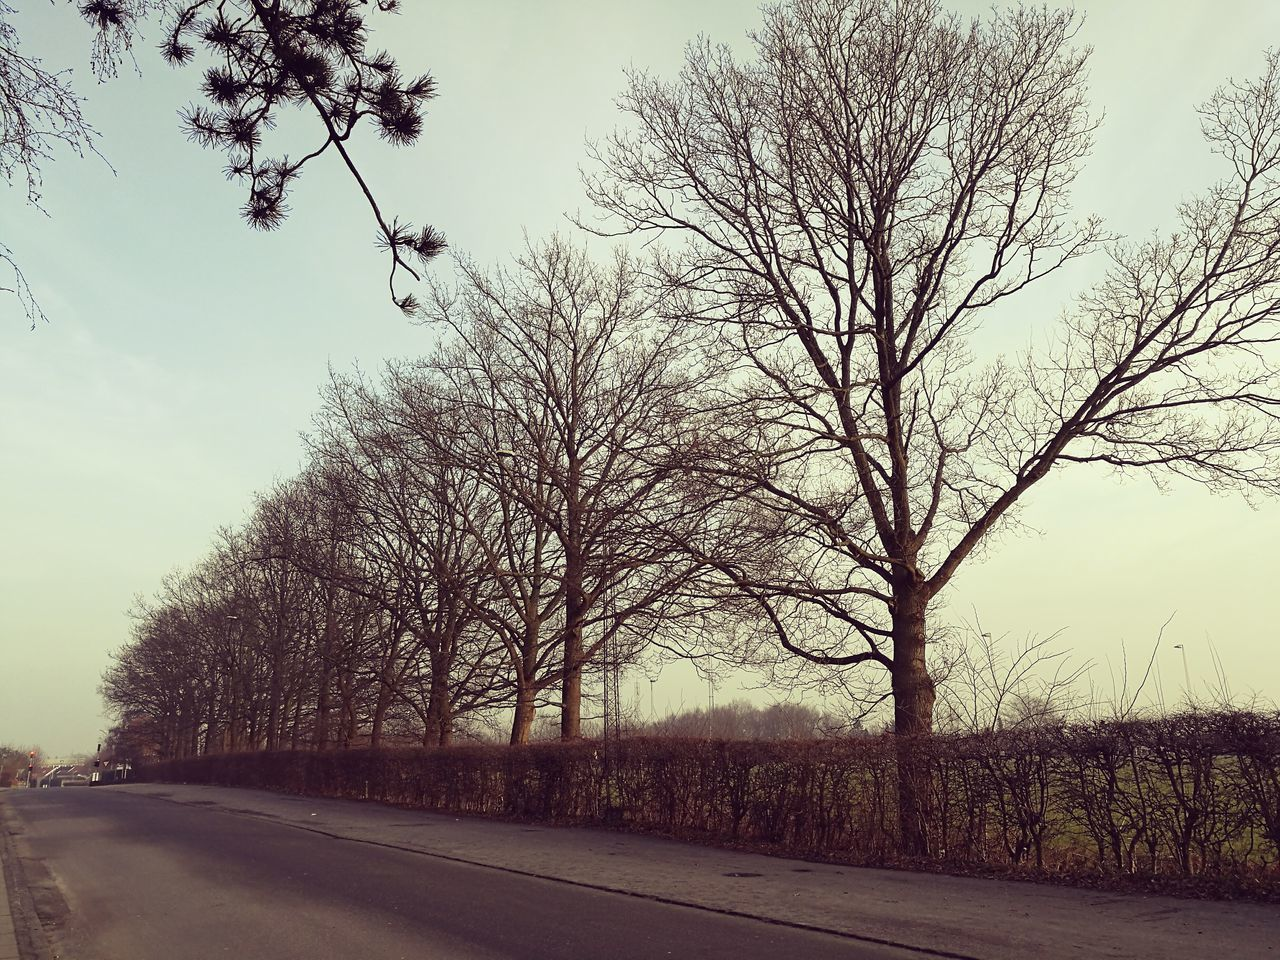 Nudetress No People Outdoors Day Taken With The Huawei P9 Sønderborg Denmark Winter Trees Winter 2017 Adapted To The City EyeEmNewHere The Great Outdoors - 2017 EyeEm Awards